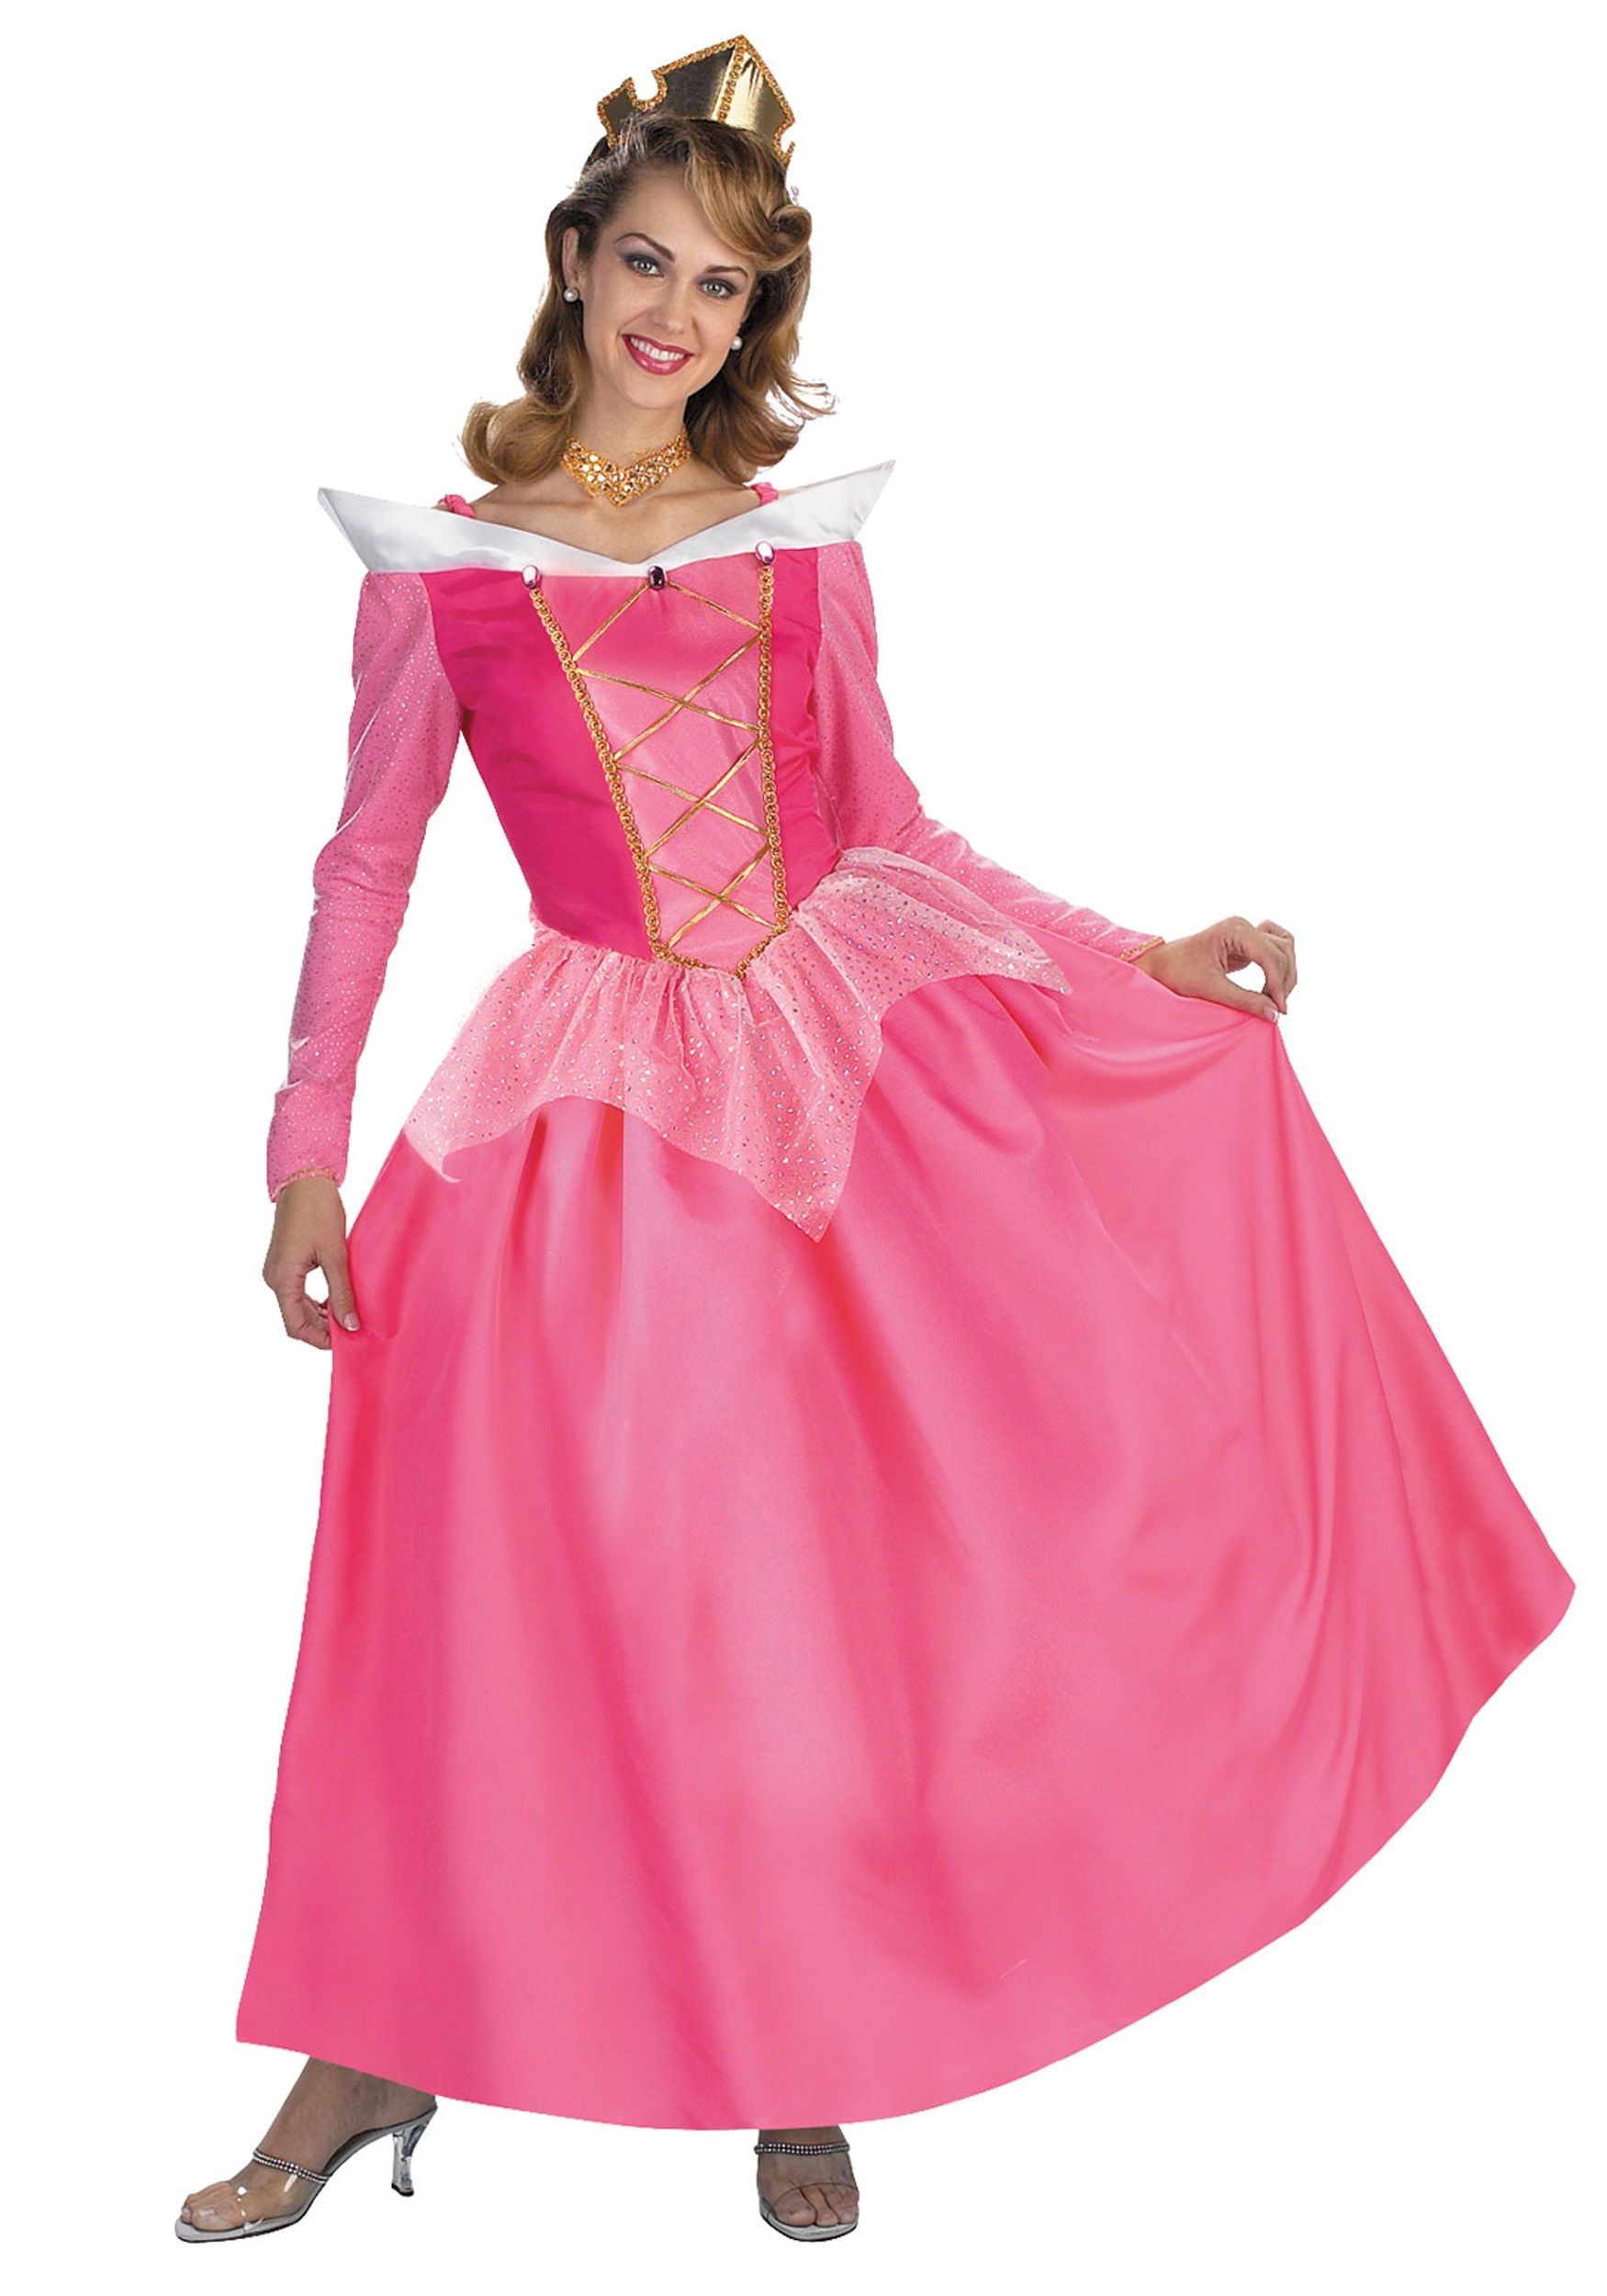 Nina's original princess halloween costume from Kmart ...